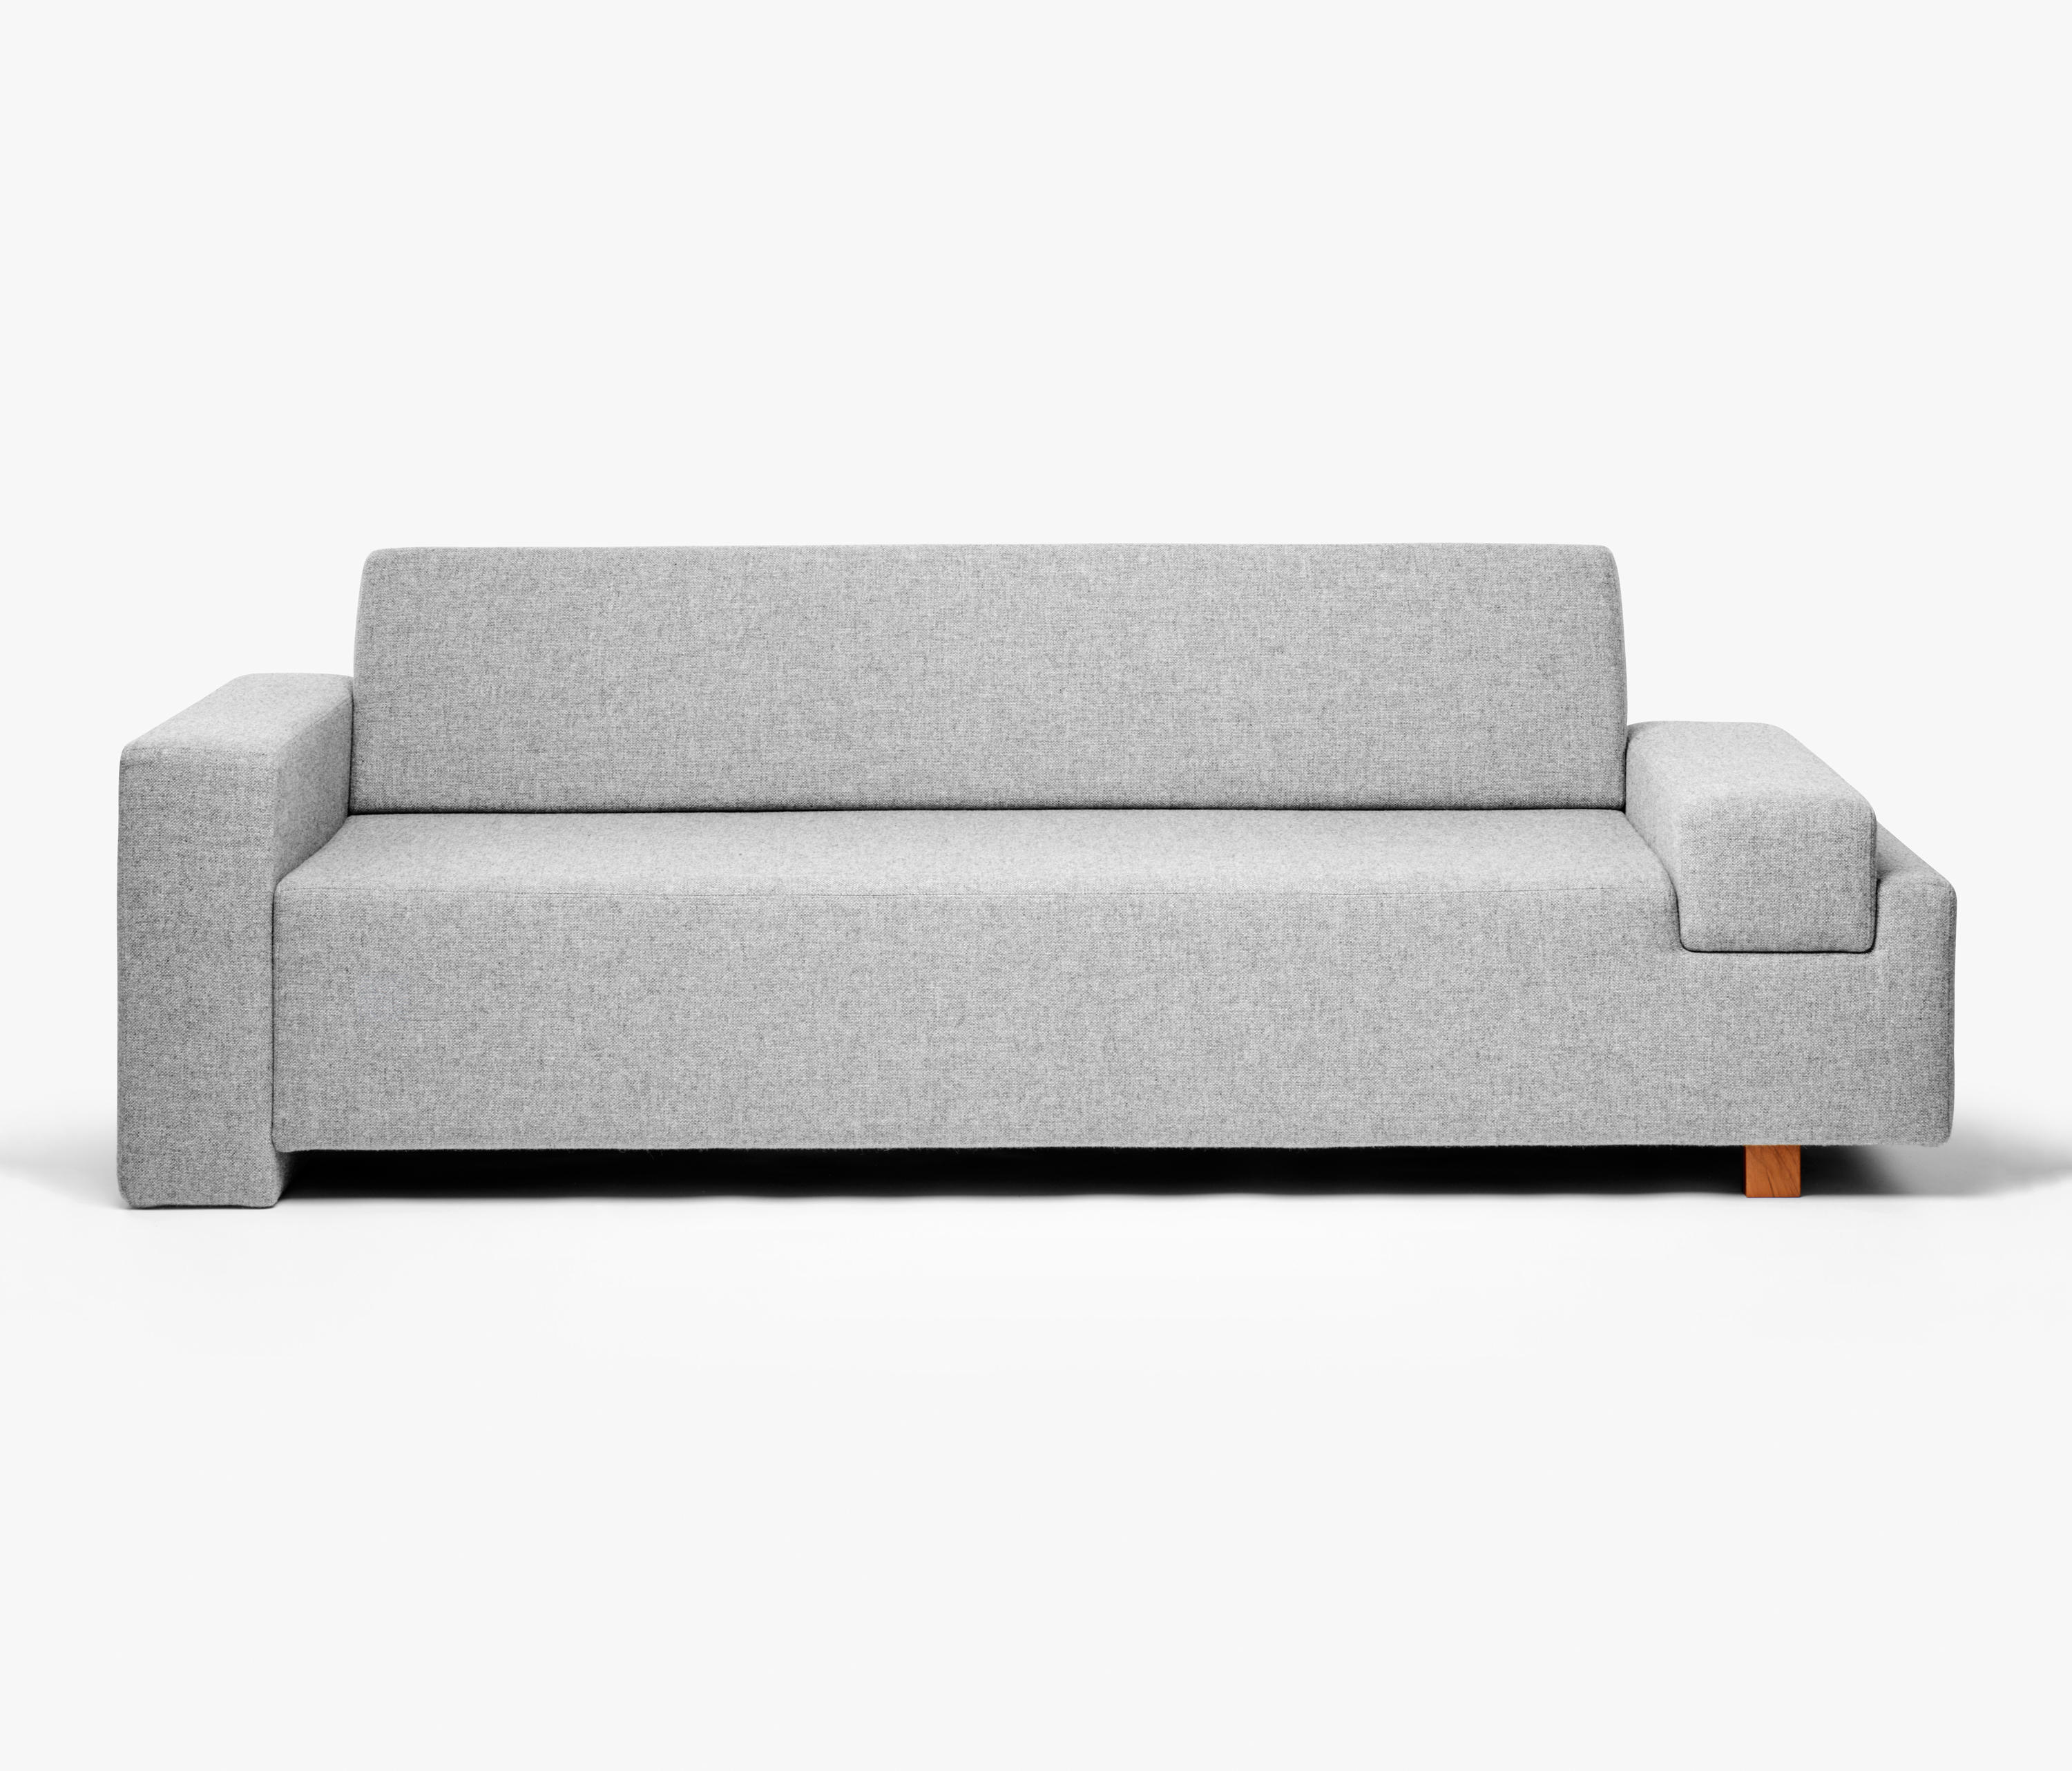 Superieur Upside Down Couch By De Vorm | Sofas ...